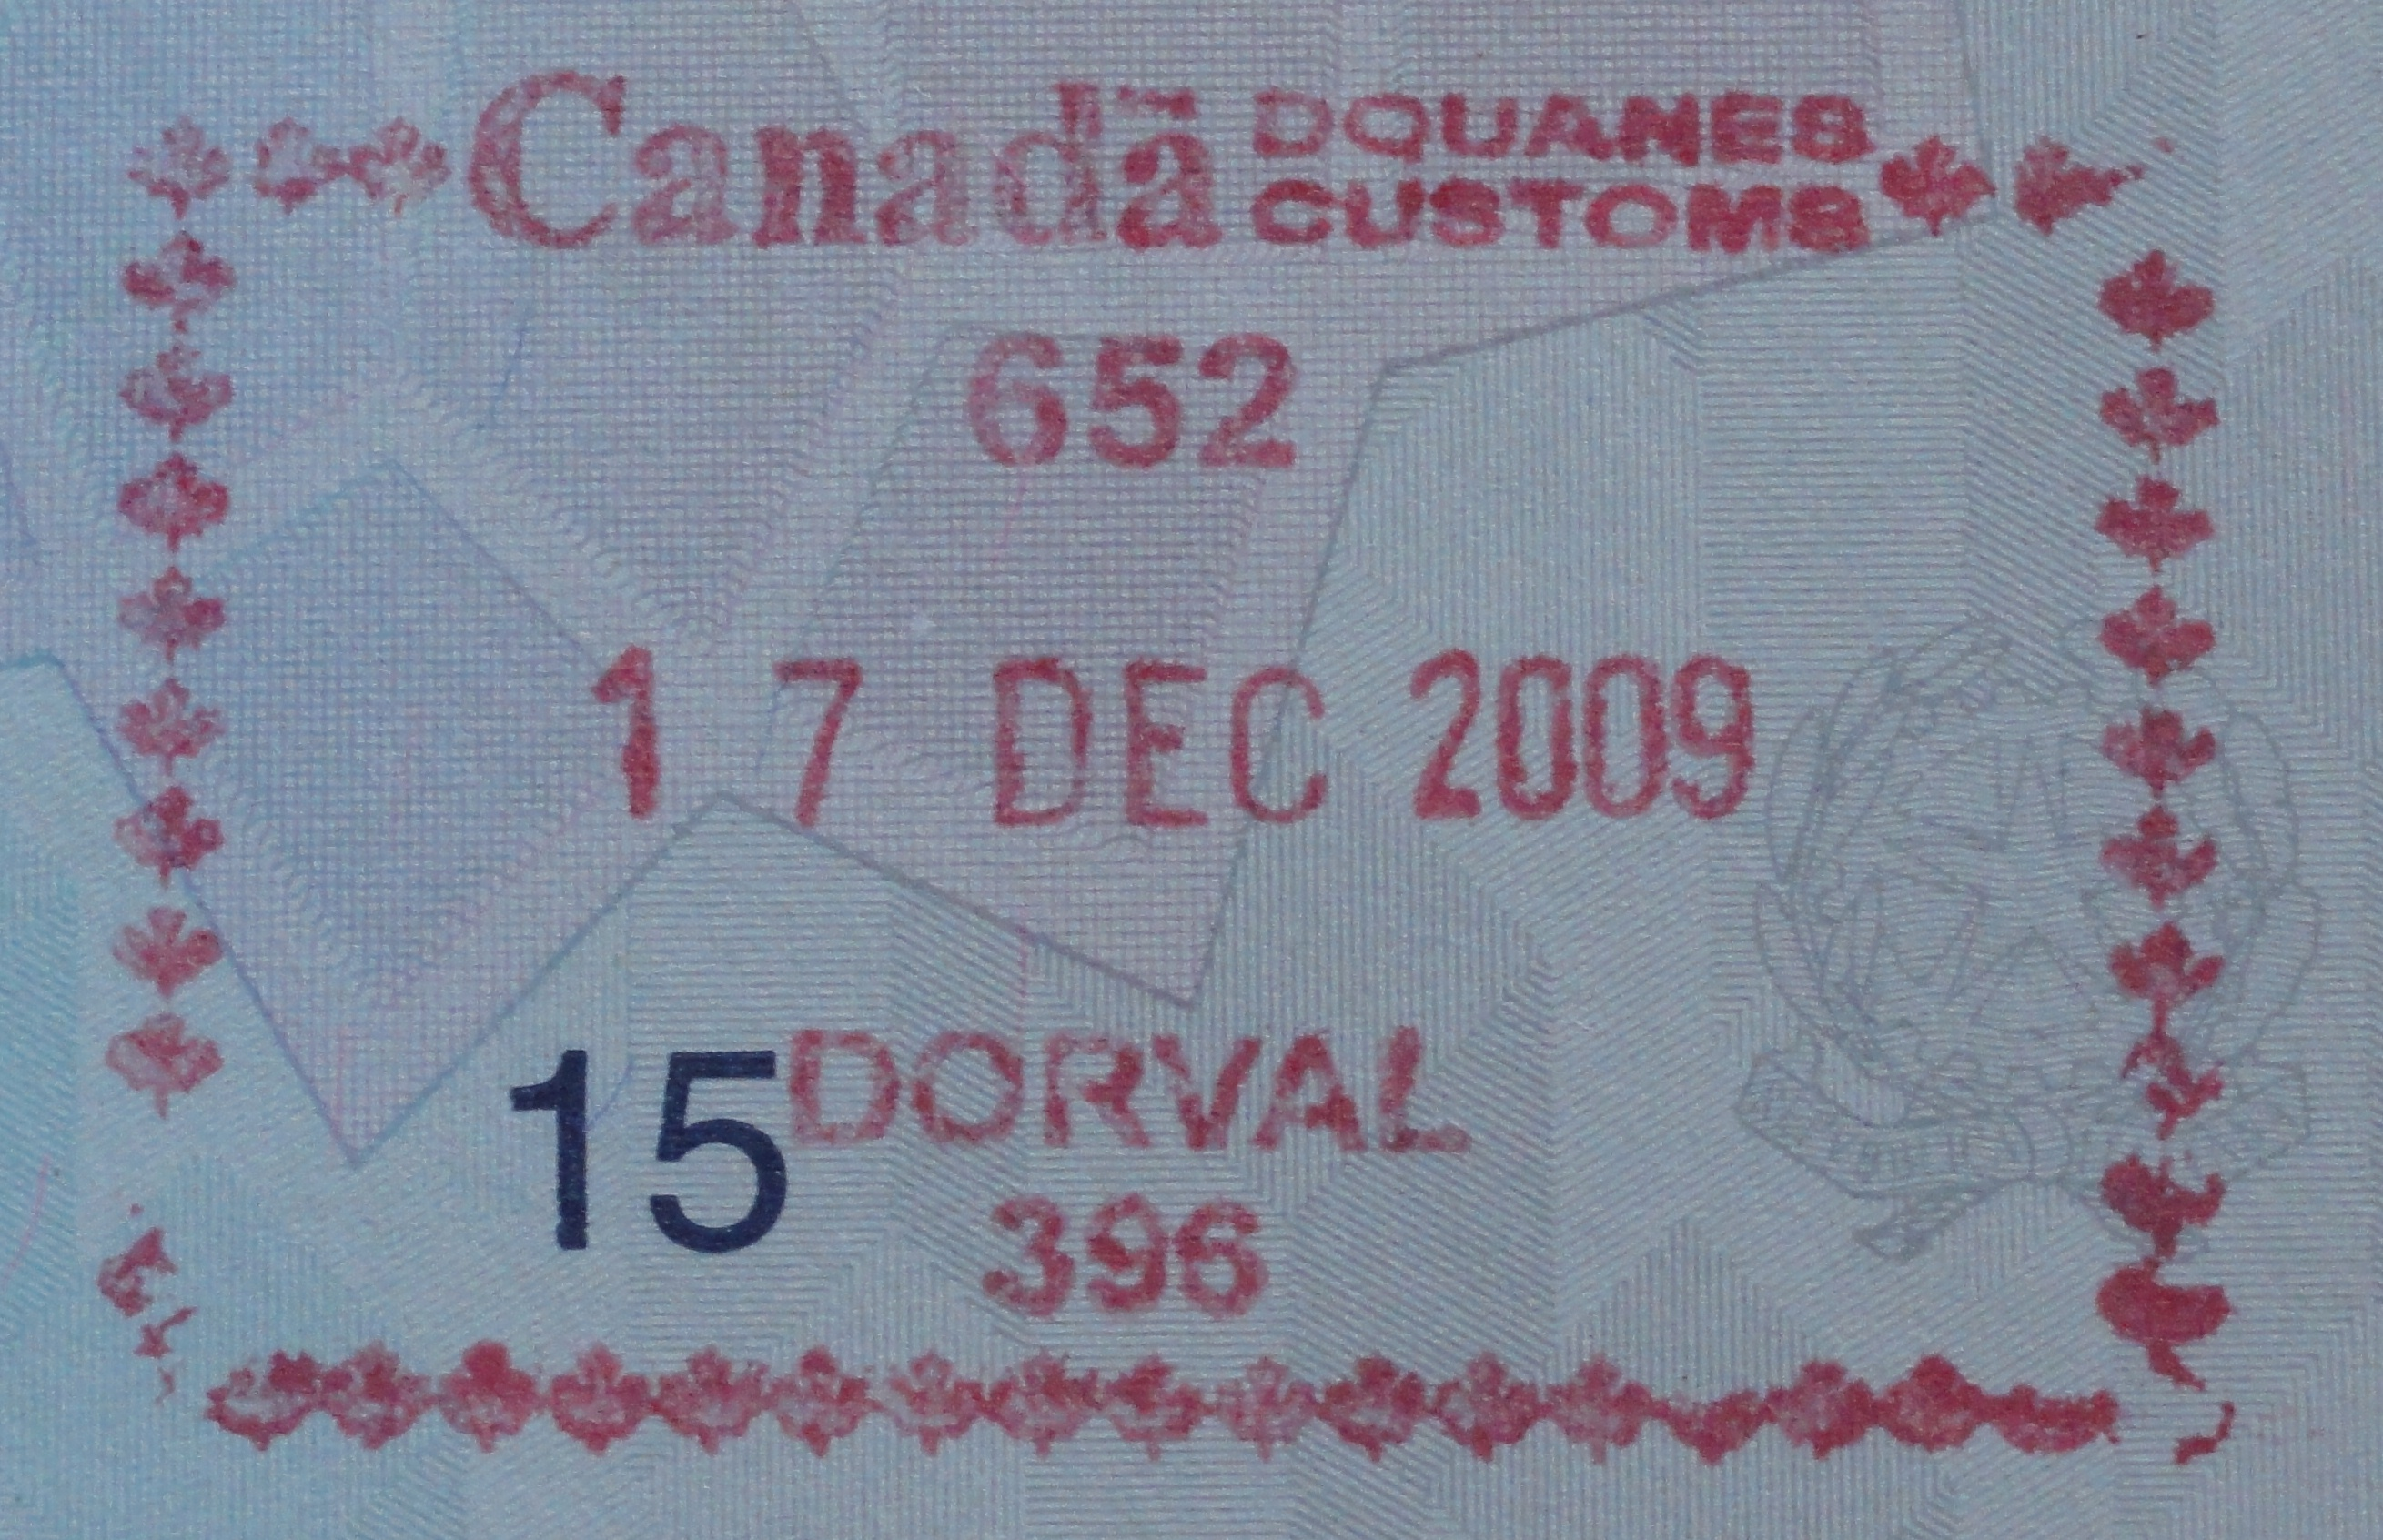 World Visa Information Visahunter.com - Canadian visa for single entry